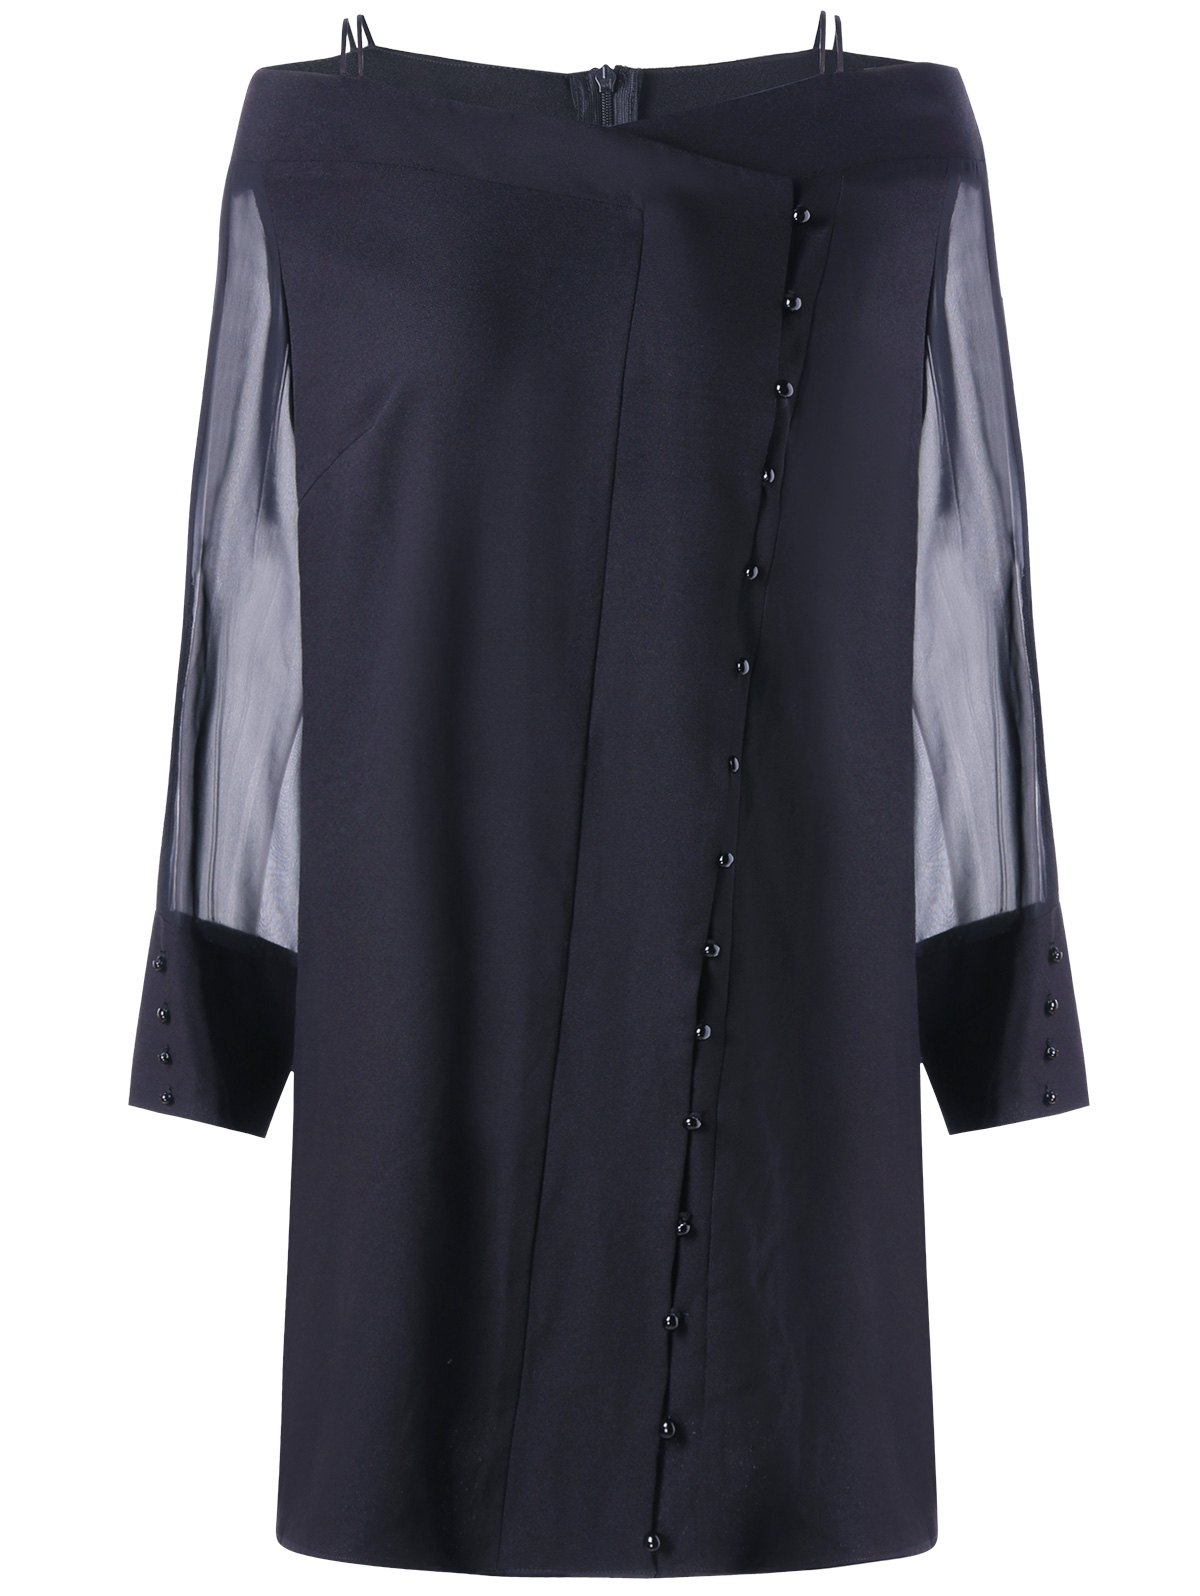 Button Sheer Long Sleeve Plus Size DressWOMEN<br><br>Size: 5XL; Color: BLACK; Style: Brief; Material: Polyester; Silhouette: Straight; Dresses Length: Mini; Neckline: Off The Shoulder; Sleeve Length: Long Sleeves; Embellishment: Button; Pattern Type: Solid; With Belt: No; Season: Fall,Spring,Summer; Weight: 0.2800kg; Package Contents: 1 x Dress;